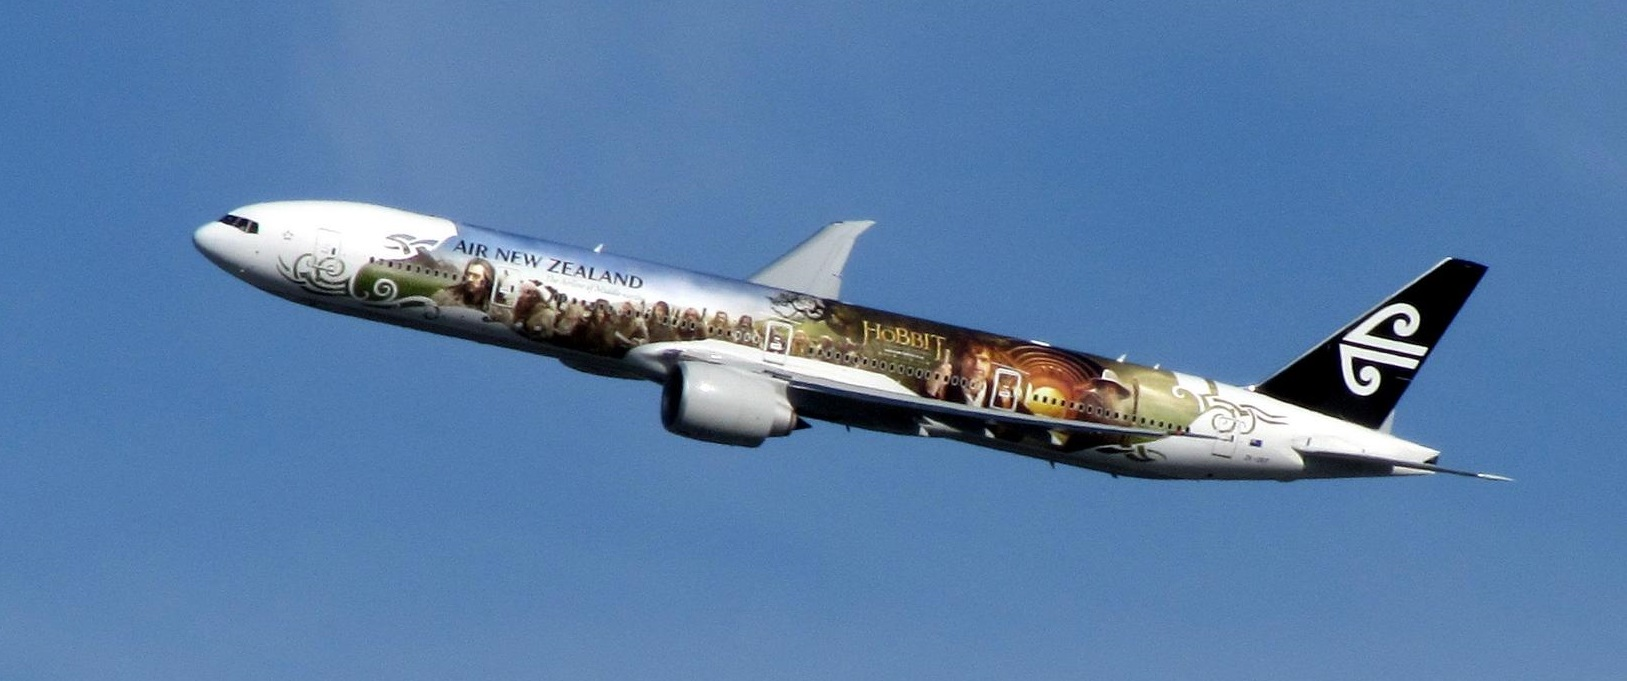 Air New Zealand aircraft with livery of The Hobbit movie